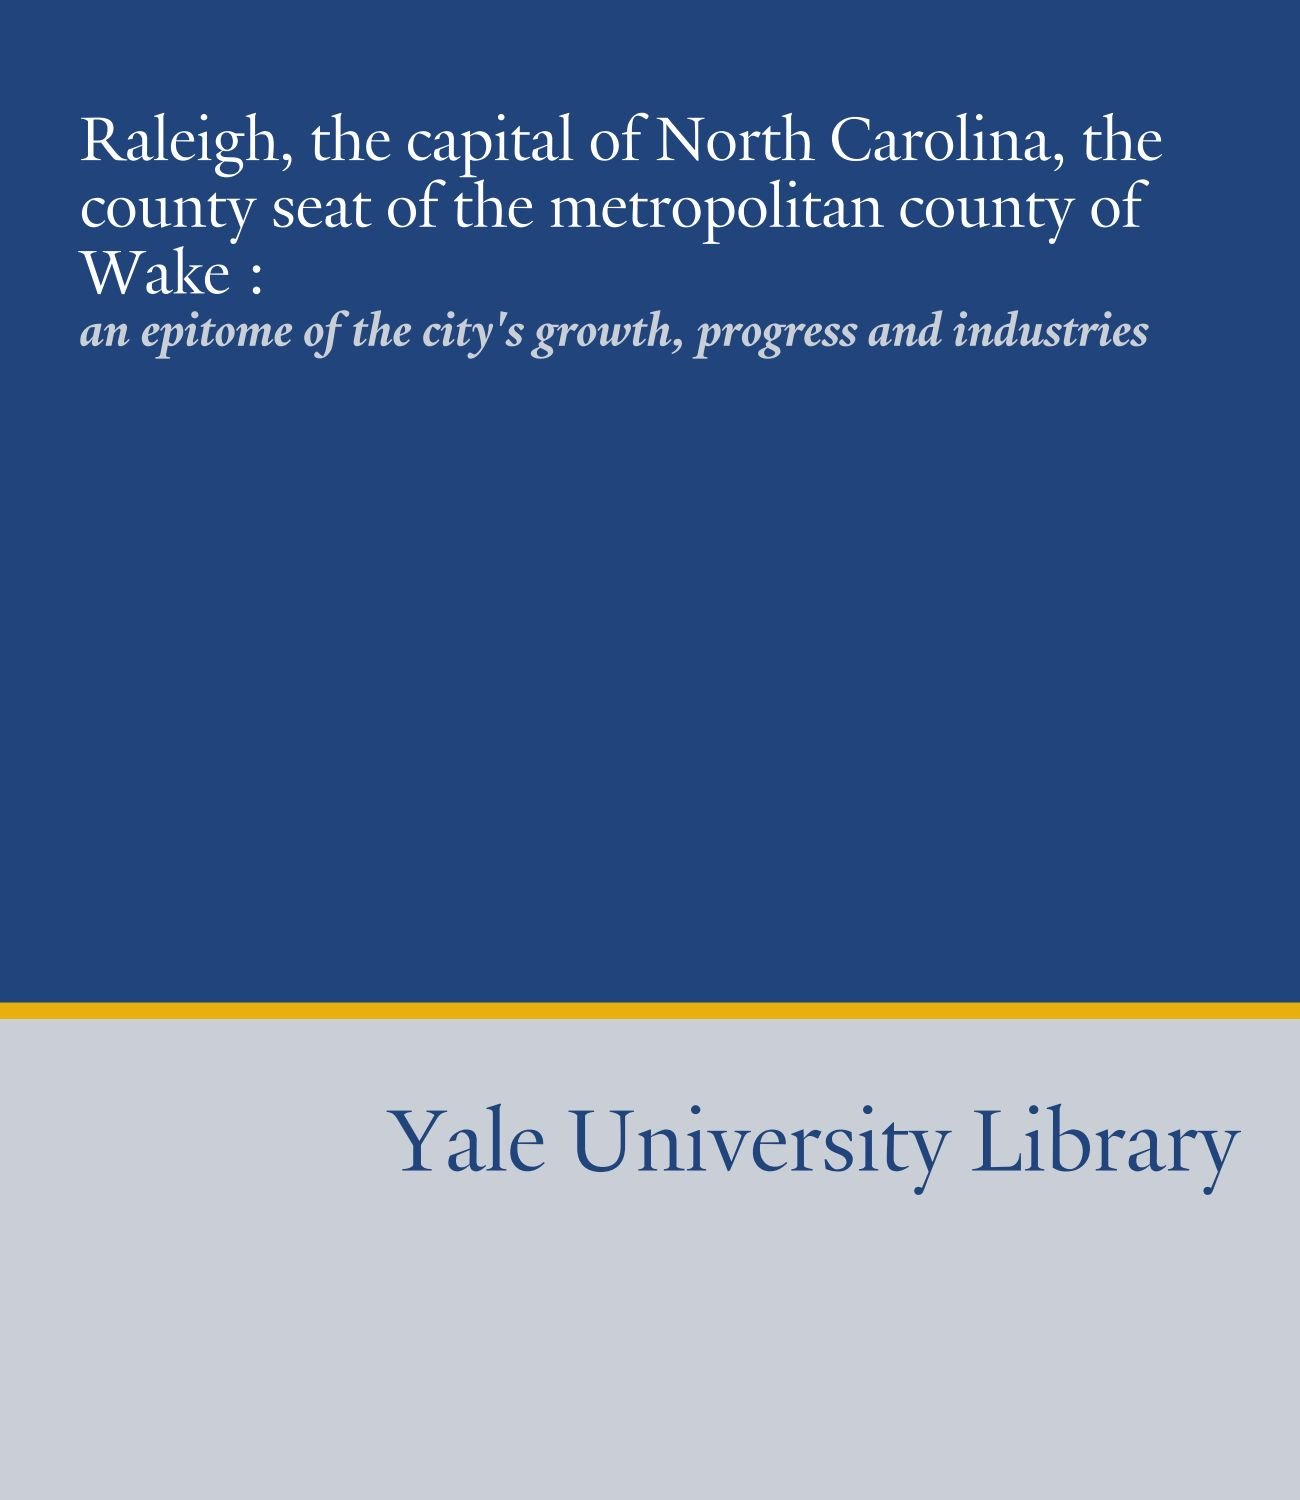 Raleigh, the capital of North Carolina, the county seat of the metropolitan county of Wake :: an epitome of the city's growth, progress and industries pdf